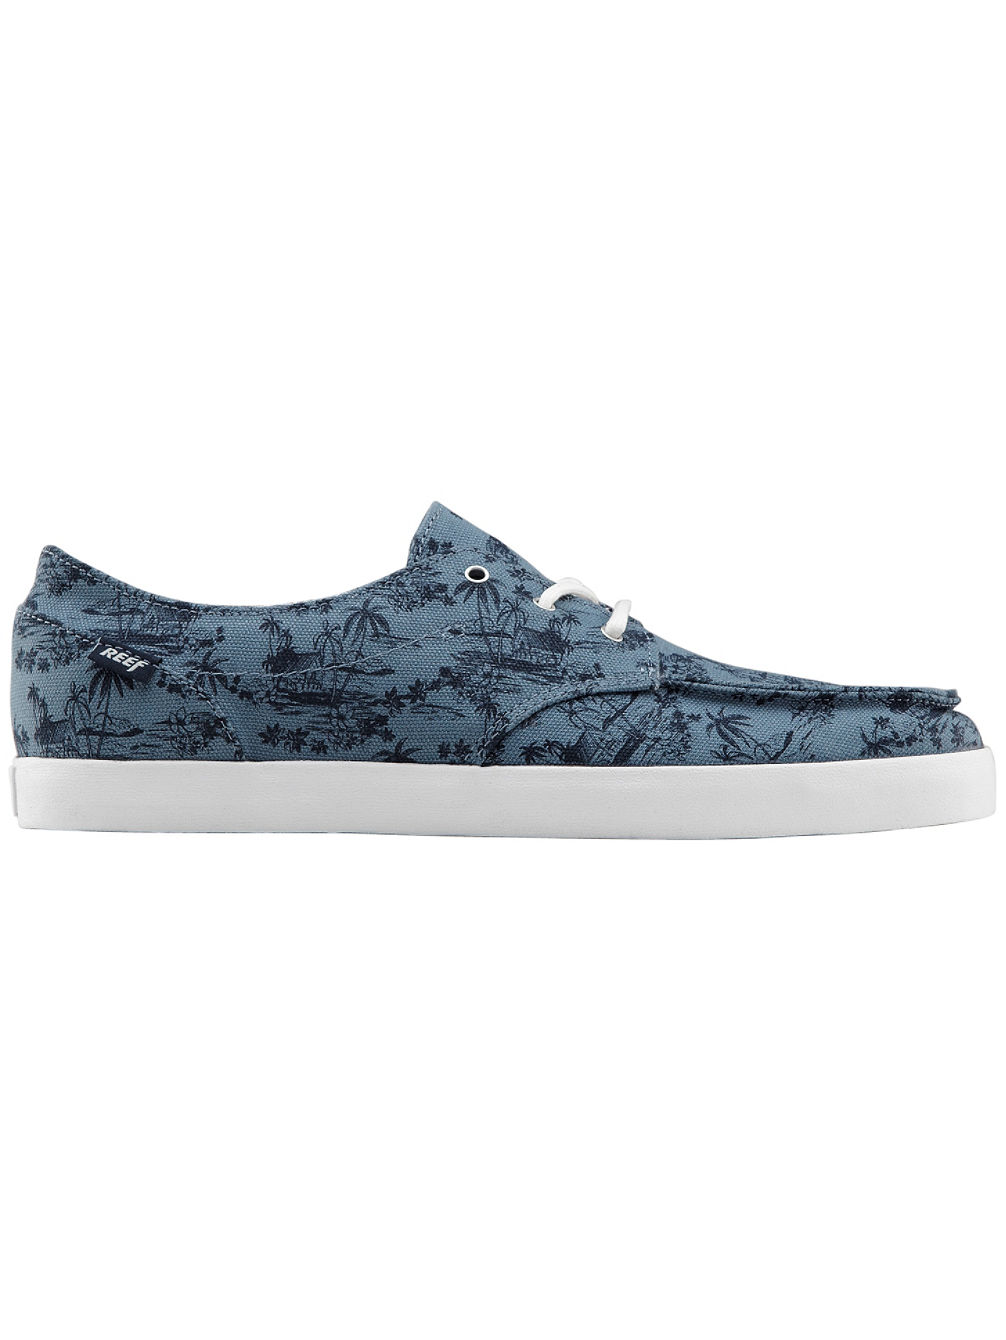 reef-deck-hand-2-prints-sneakers